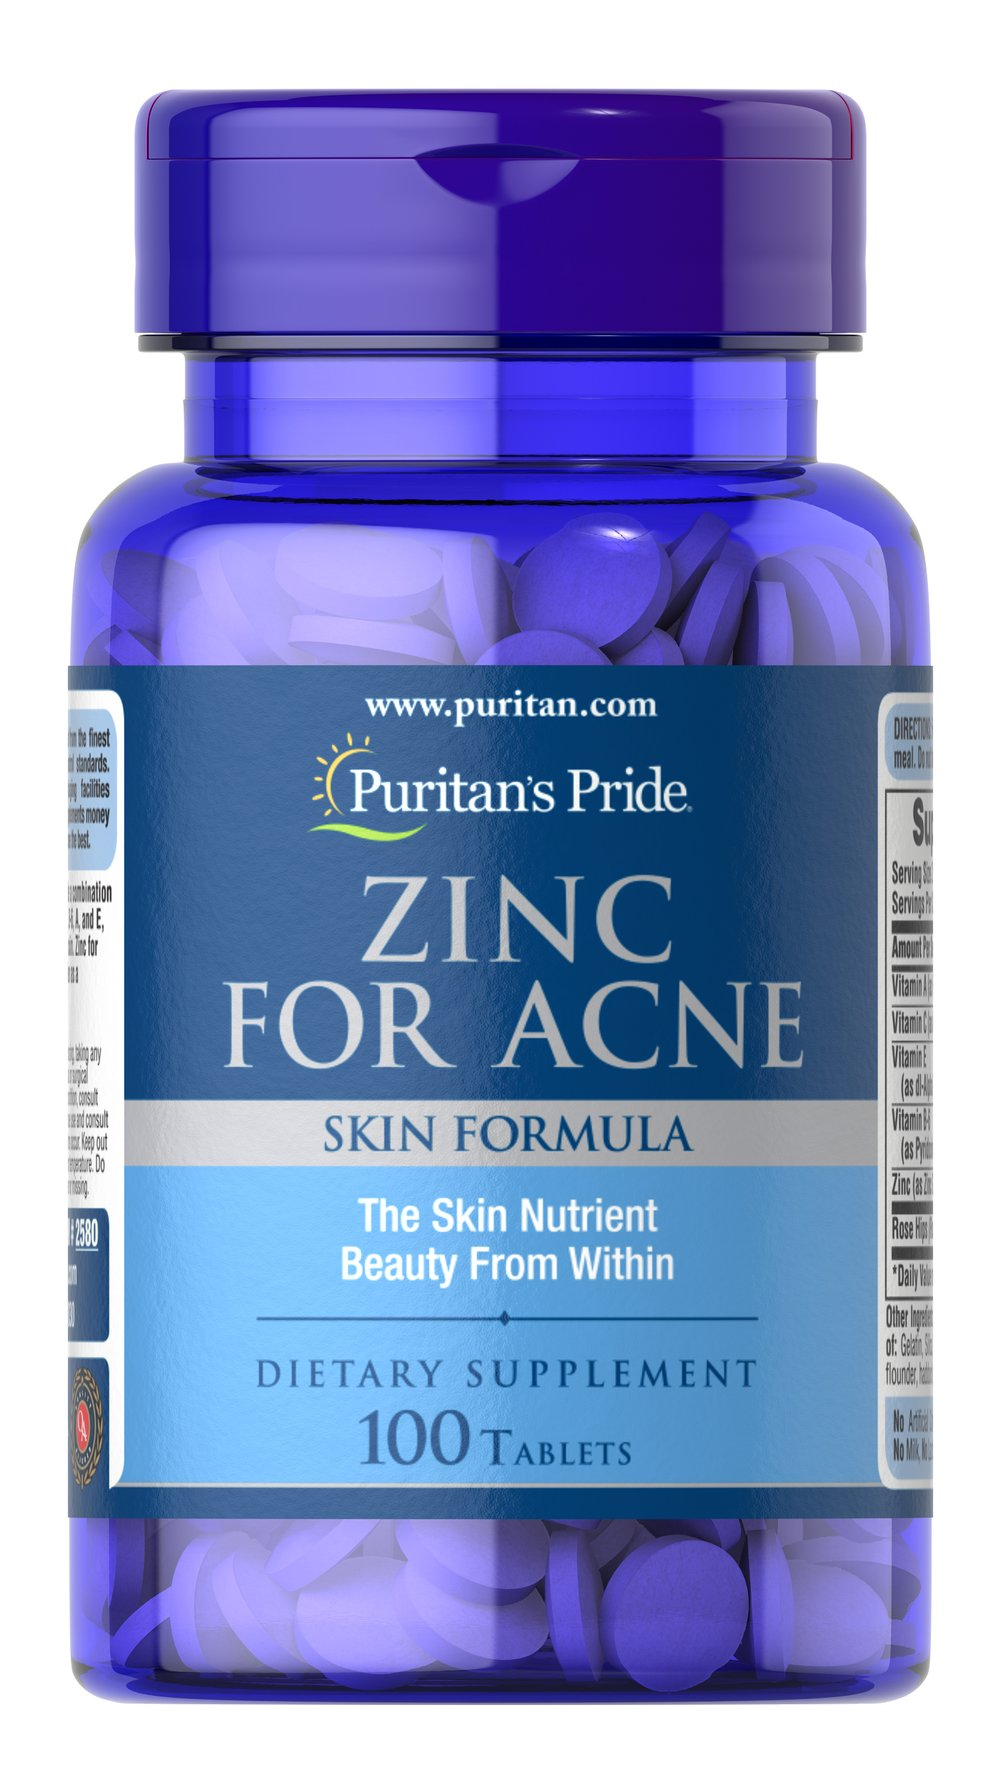 Zinc for Acne <p>Multivitamin with High Potency Zinc Supplement</p><p>Zinc for Acne tablets provide a combination of nutrients including zinc and Vitamins C, B-6, A, and E, specially blended for your skin. Zinc for Acne is designed to be taken as a supplement.</p> 100 Tablets  $10.99